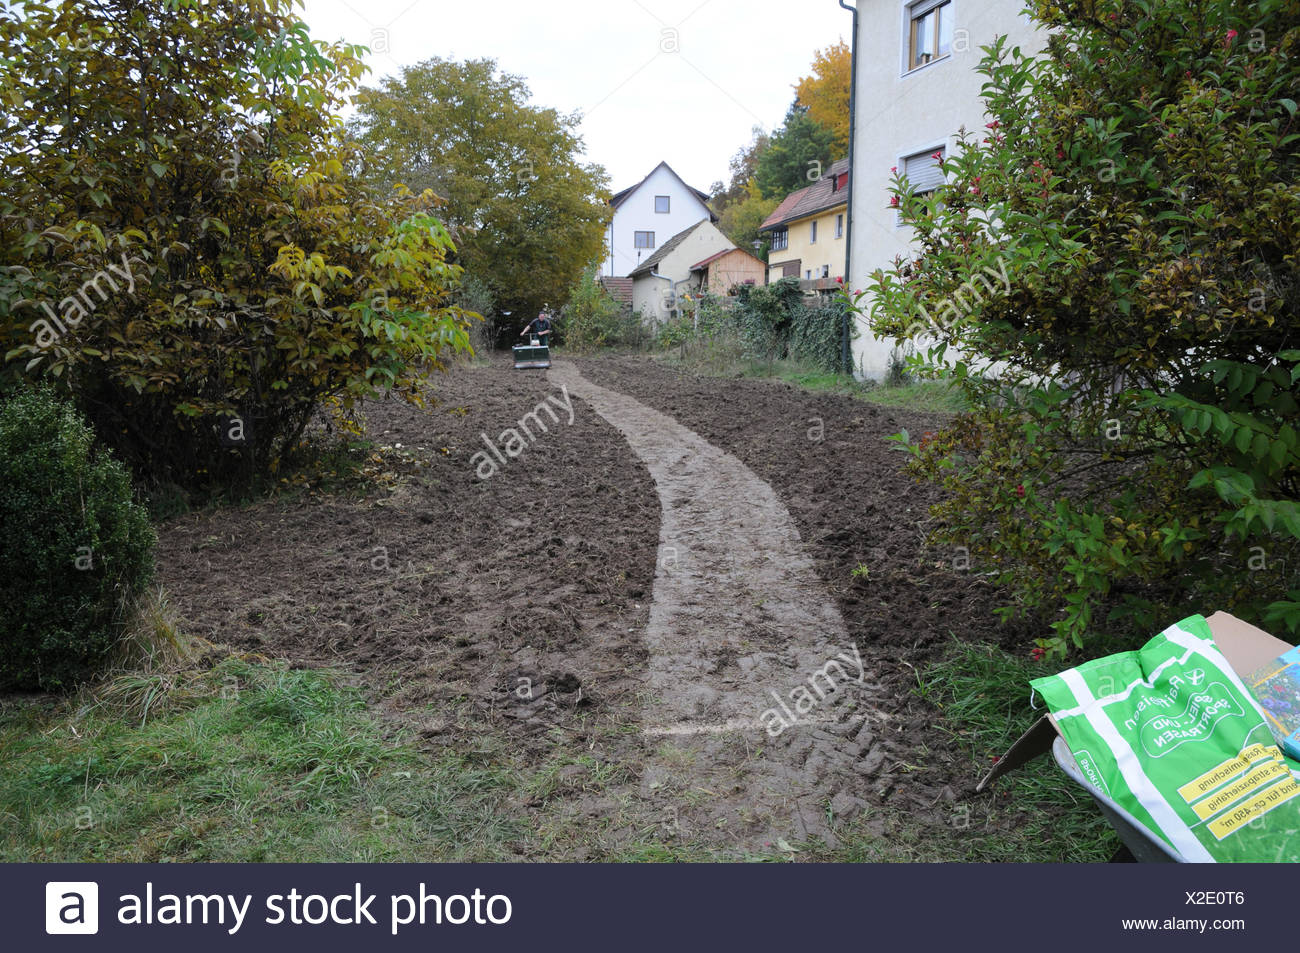 Seeding lawn with machine - Stock Image